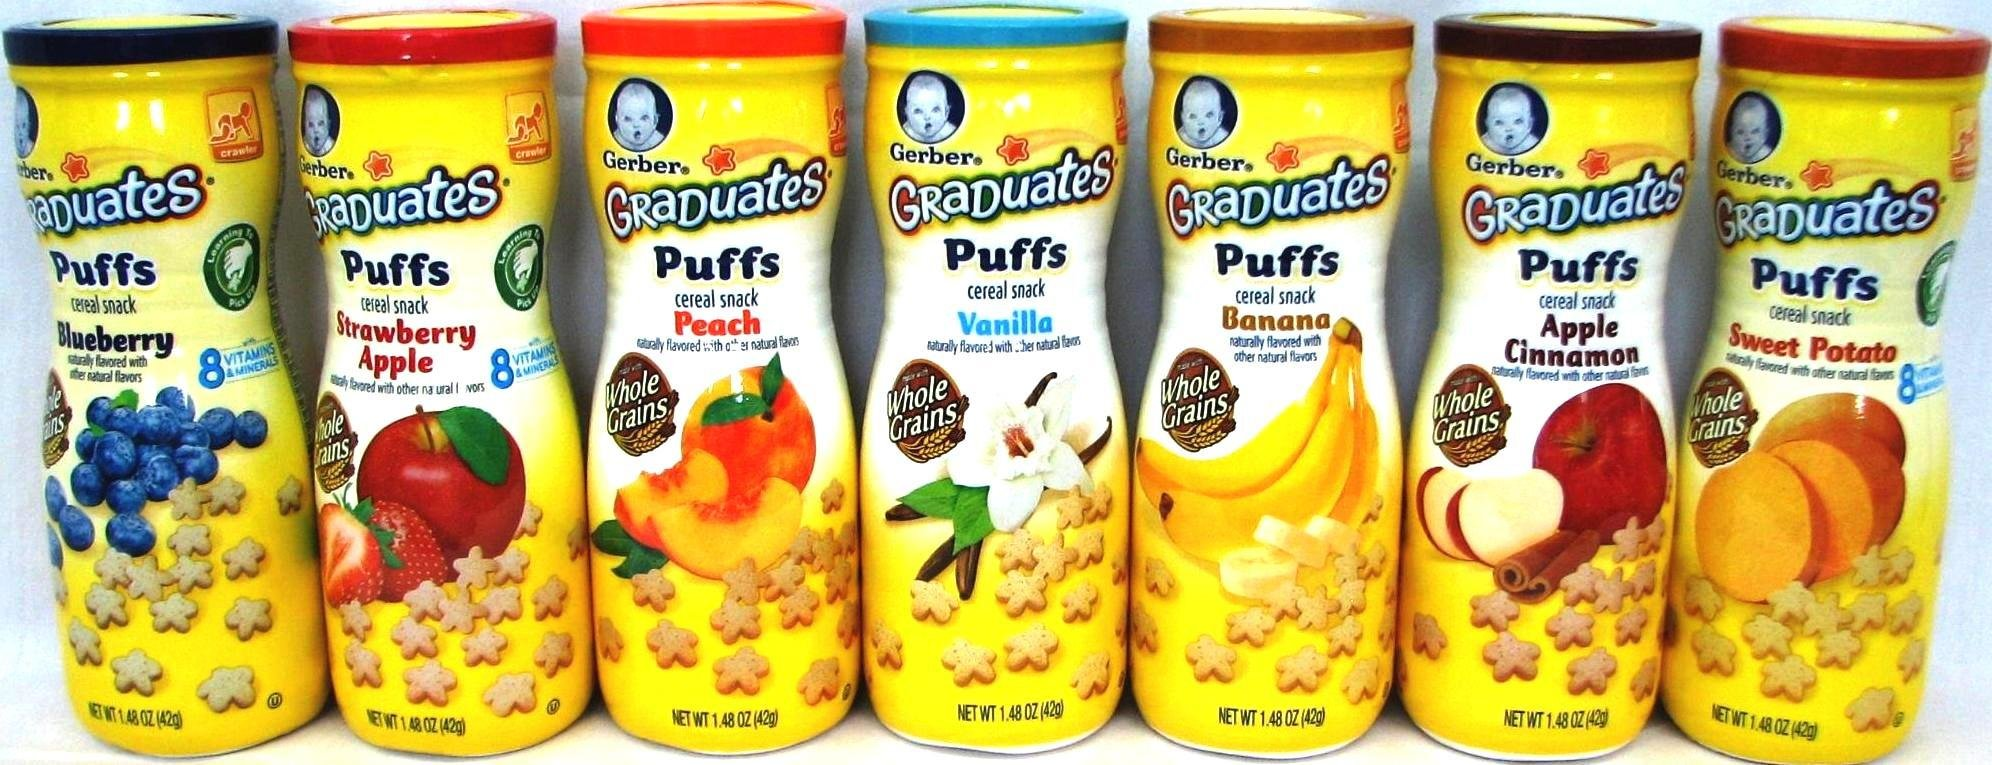 Gerber Graduates PUFFS Cereal Snack Variety Pack + Puffs Snack Catcher Cup- All 7 Flavors 1.48oz